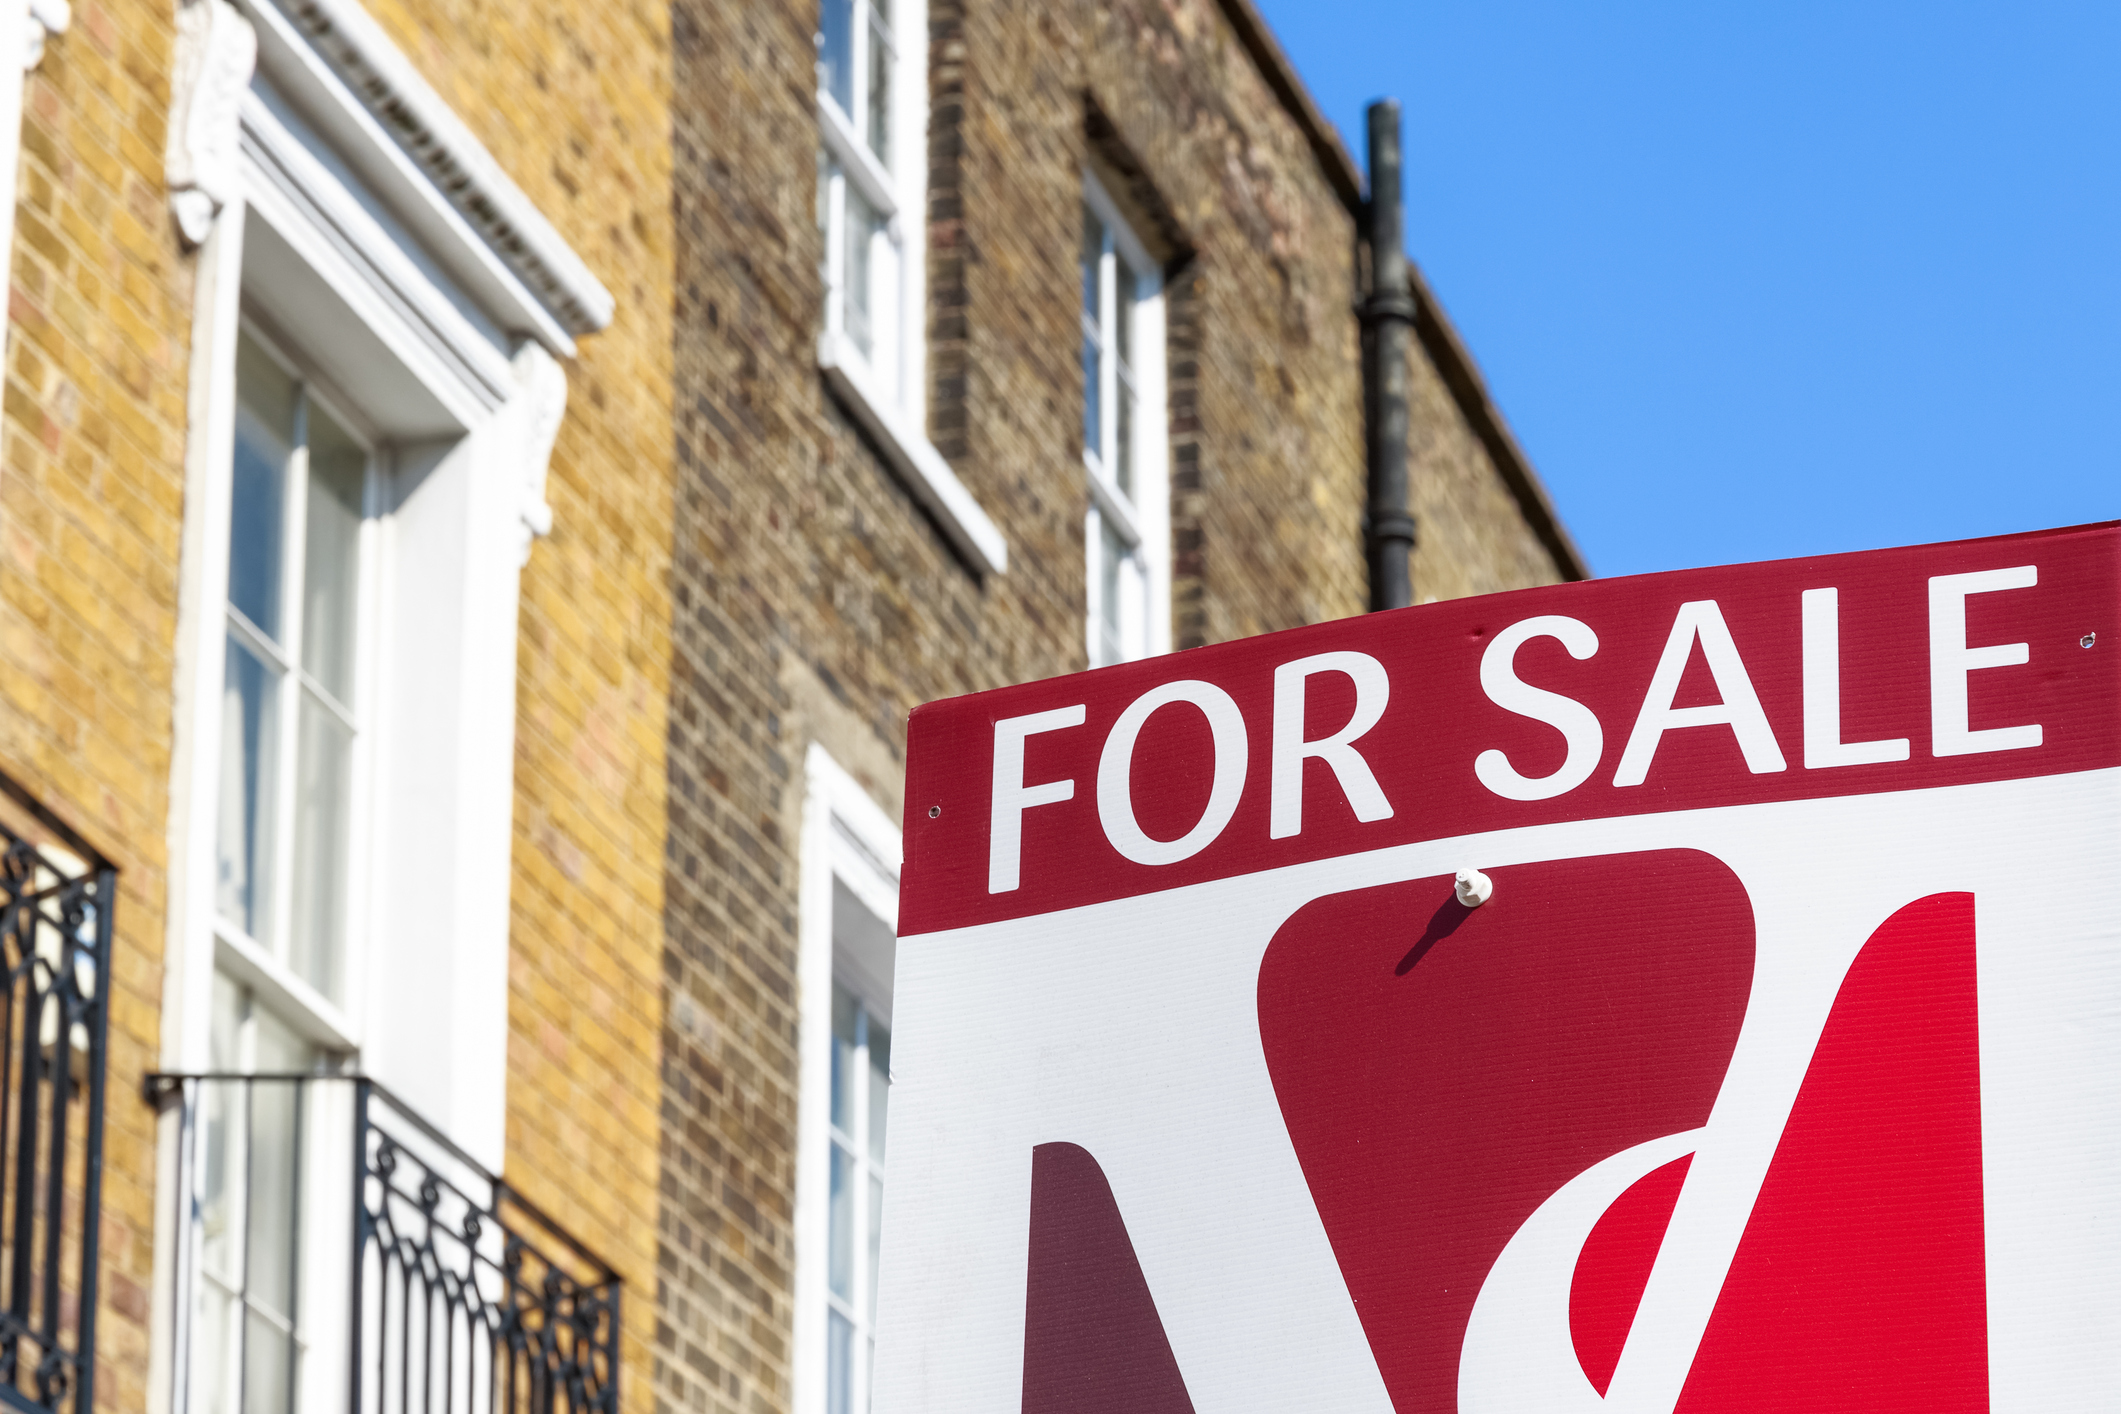 Falling London house prices Central Housing Group